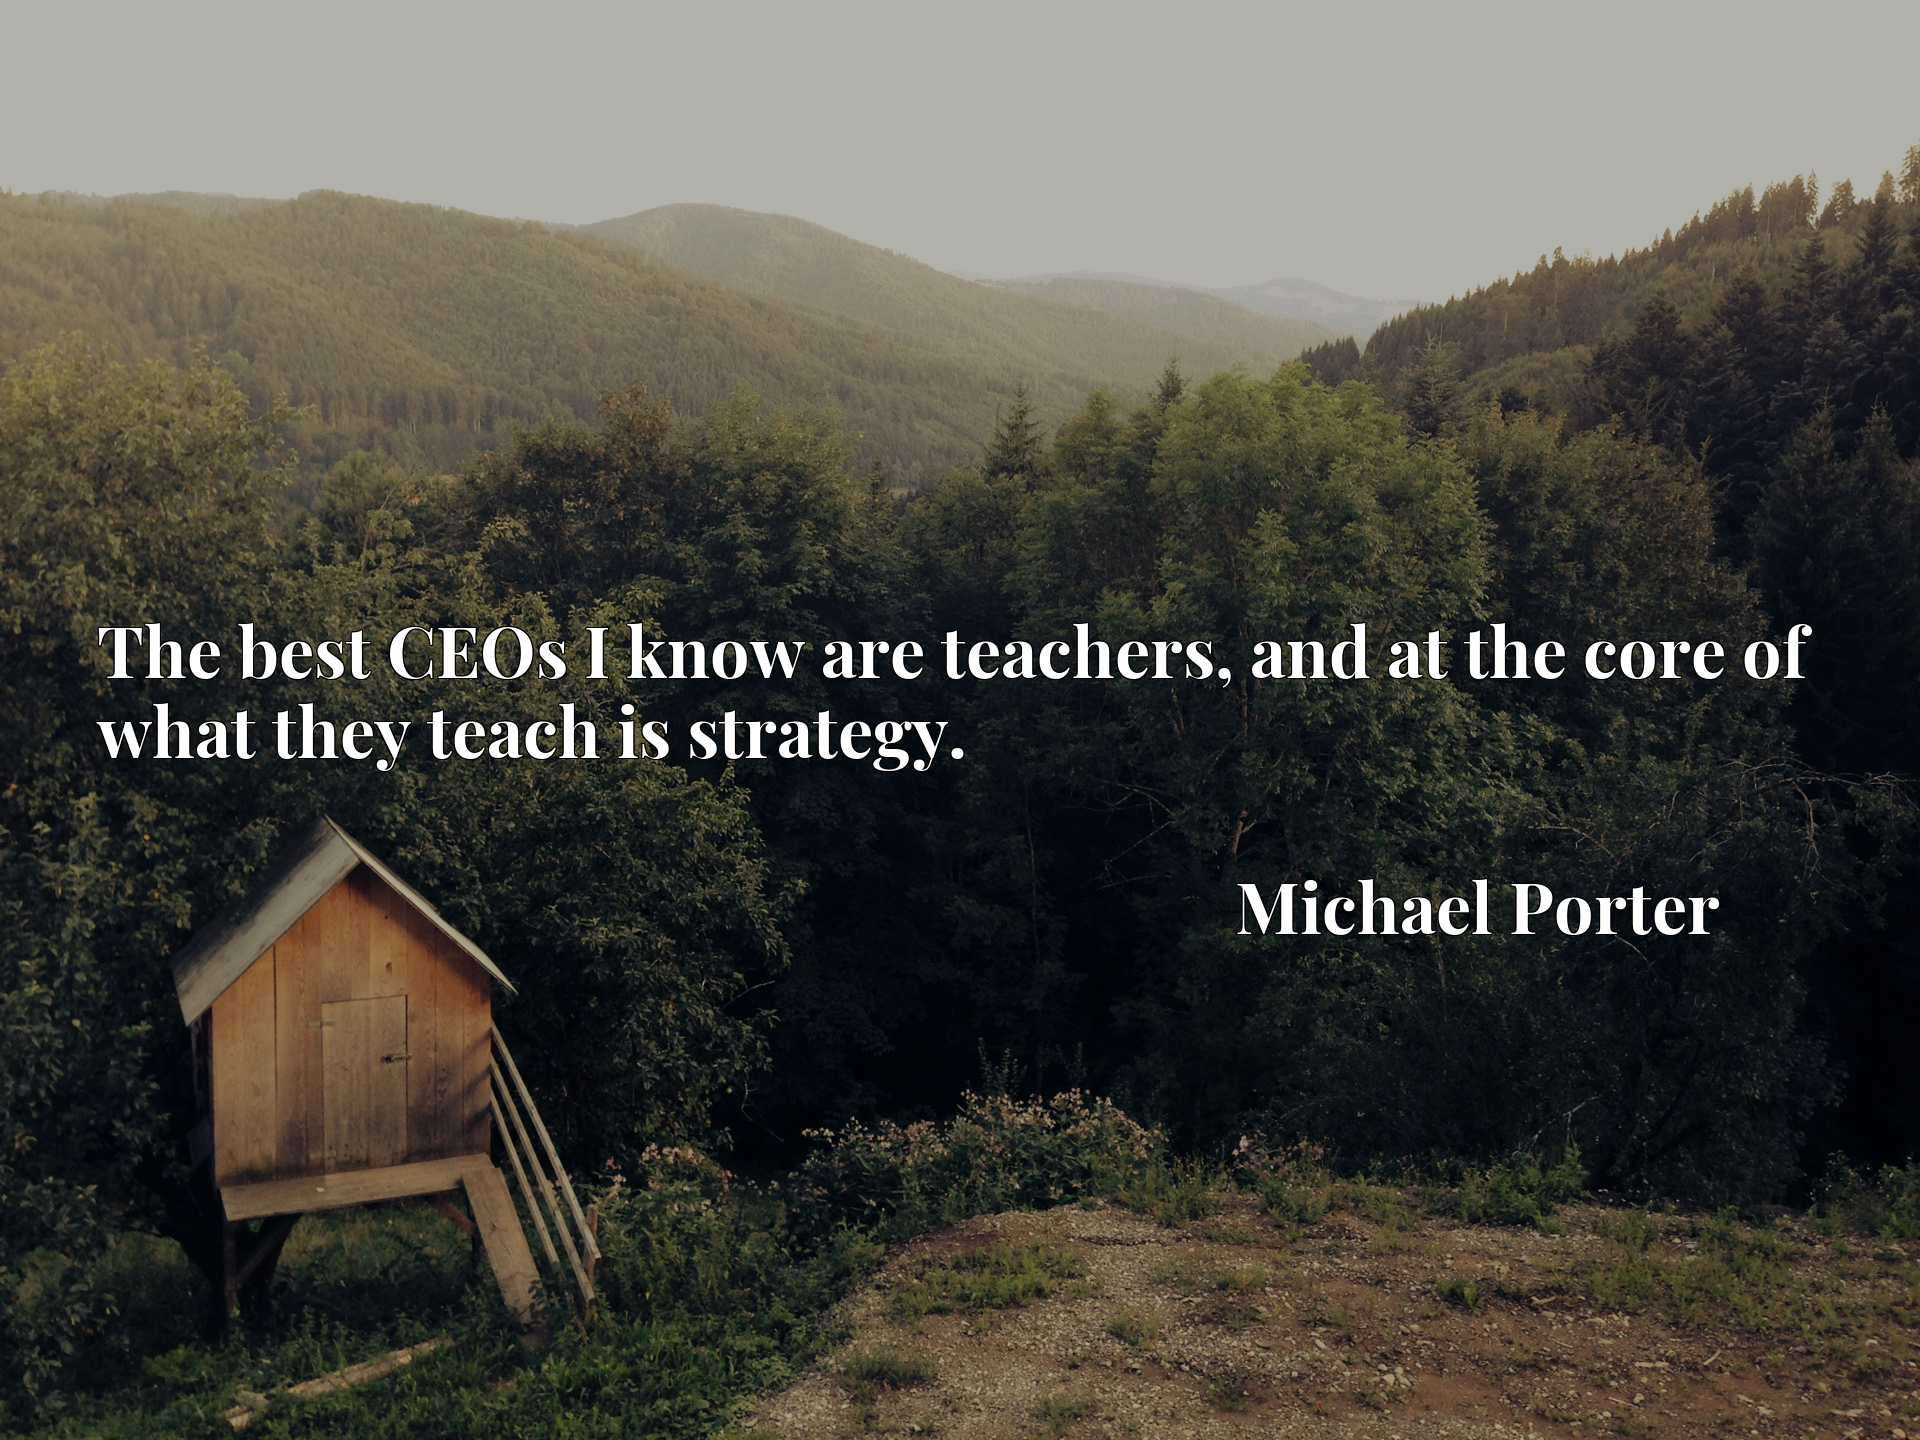 Quote Picture :The best CEOs I know are teachers, and at the core of what they teach is strategy.